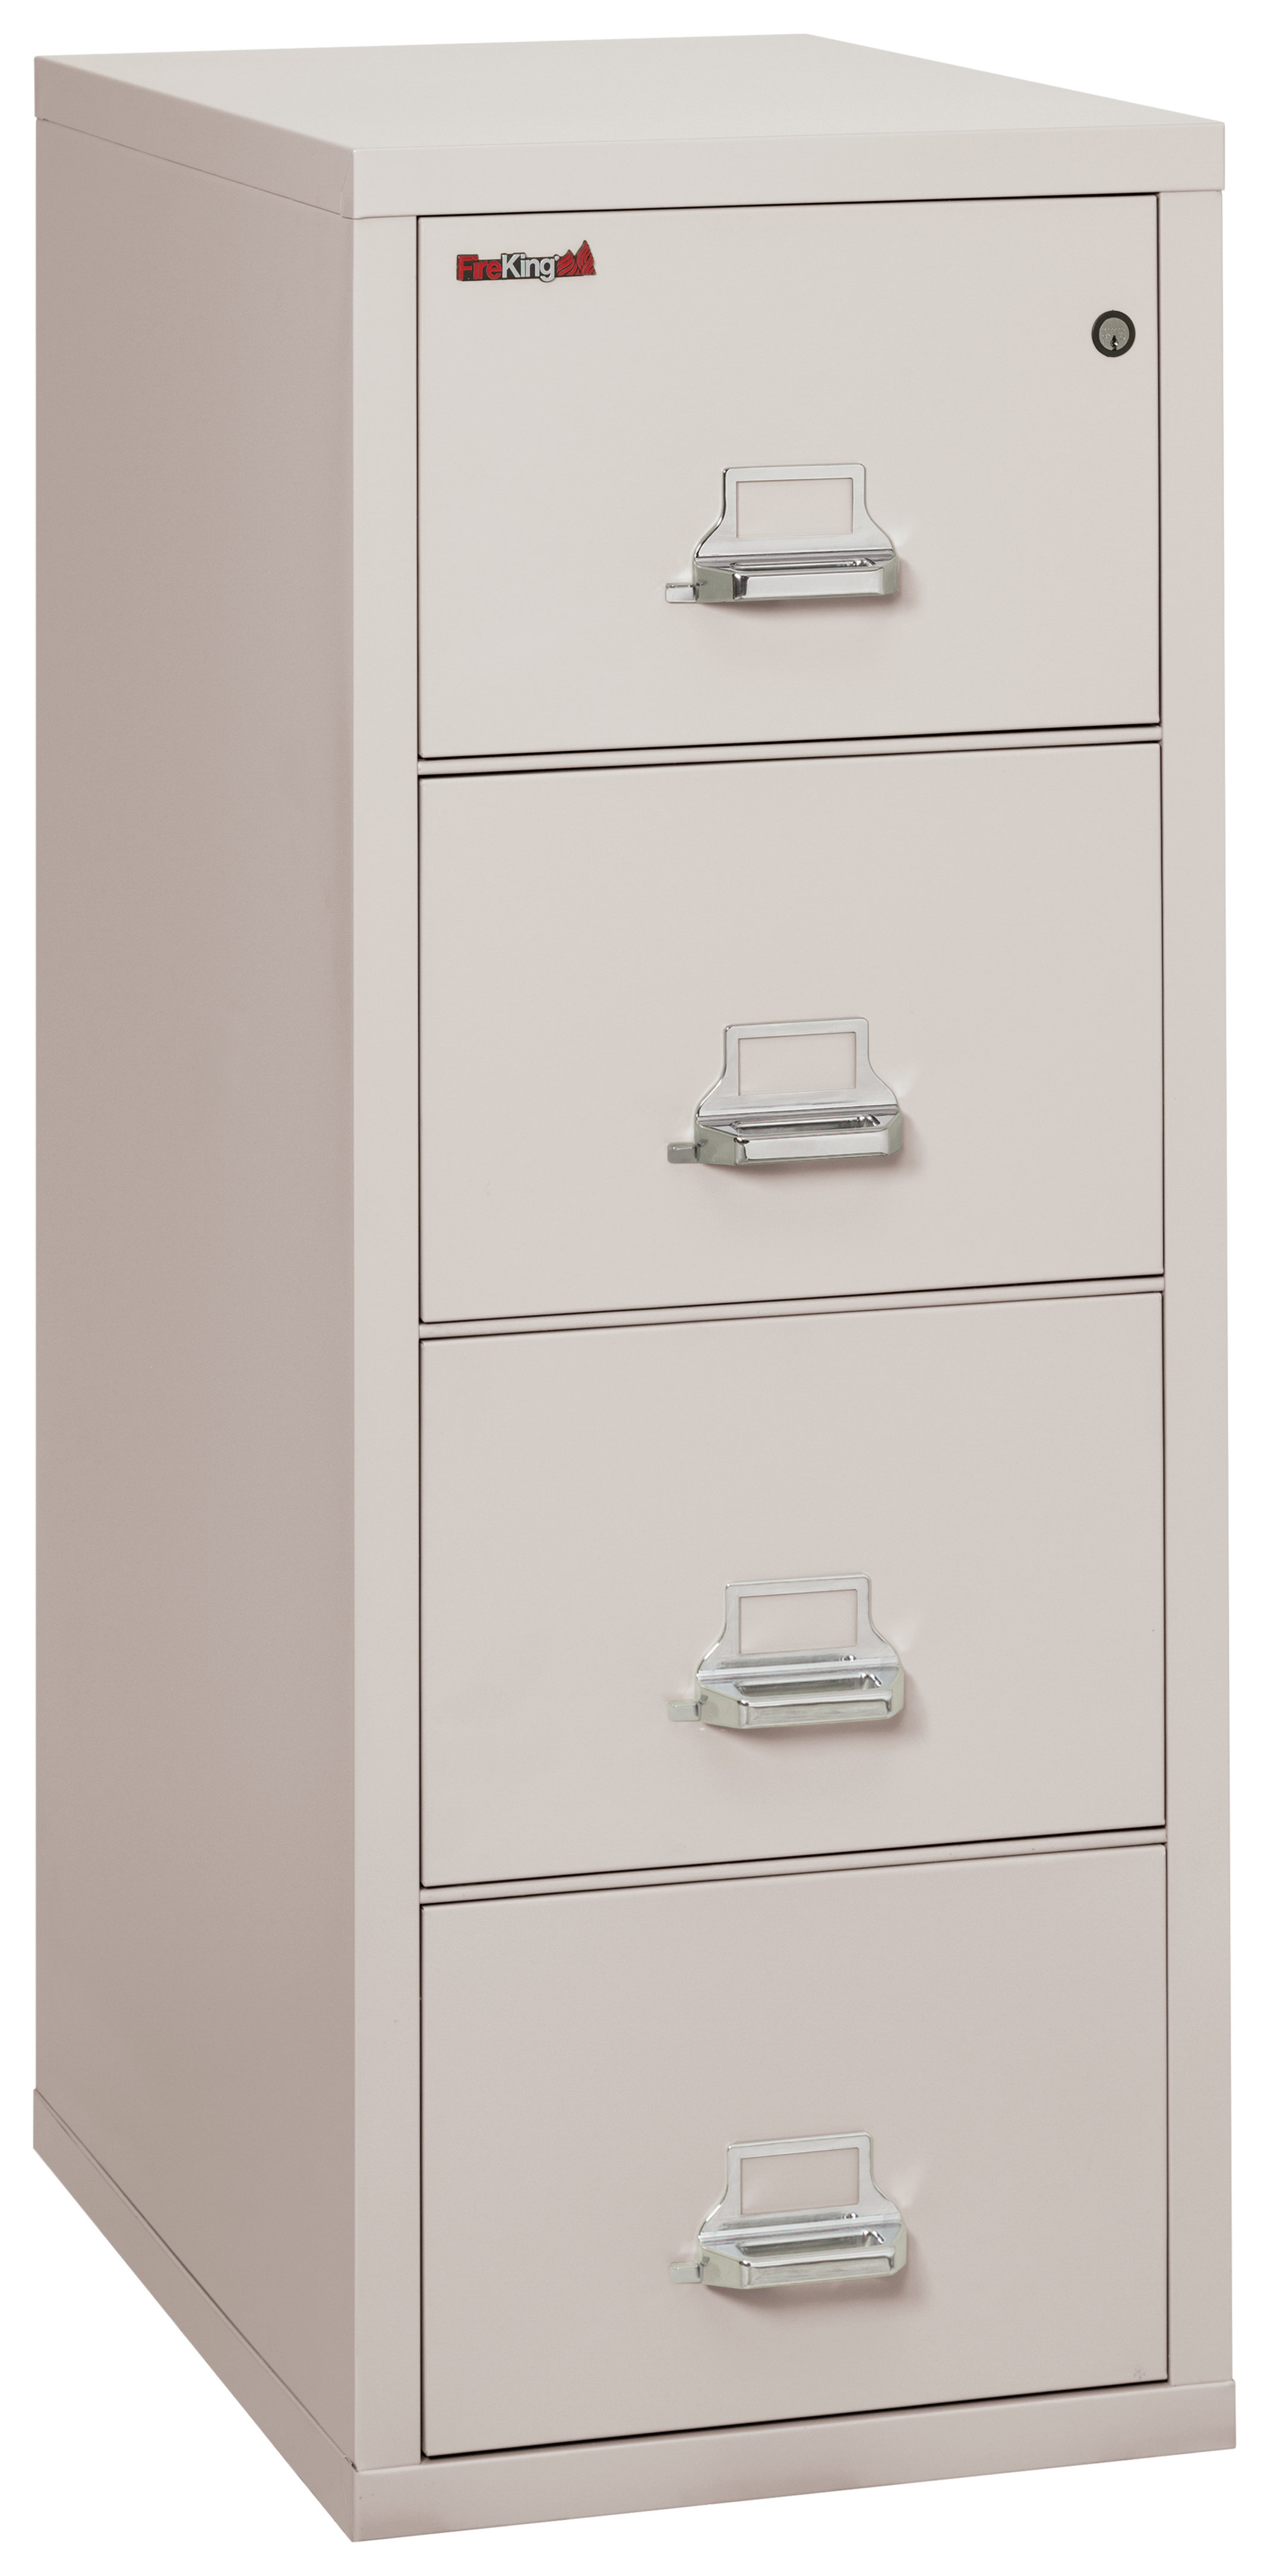 Fireking Fireproof 4 Drawer Vertical File Cabinet Wayfair intended for sizing 2123 X 4336